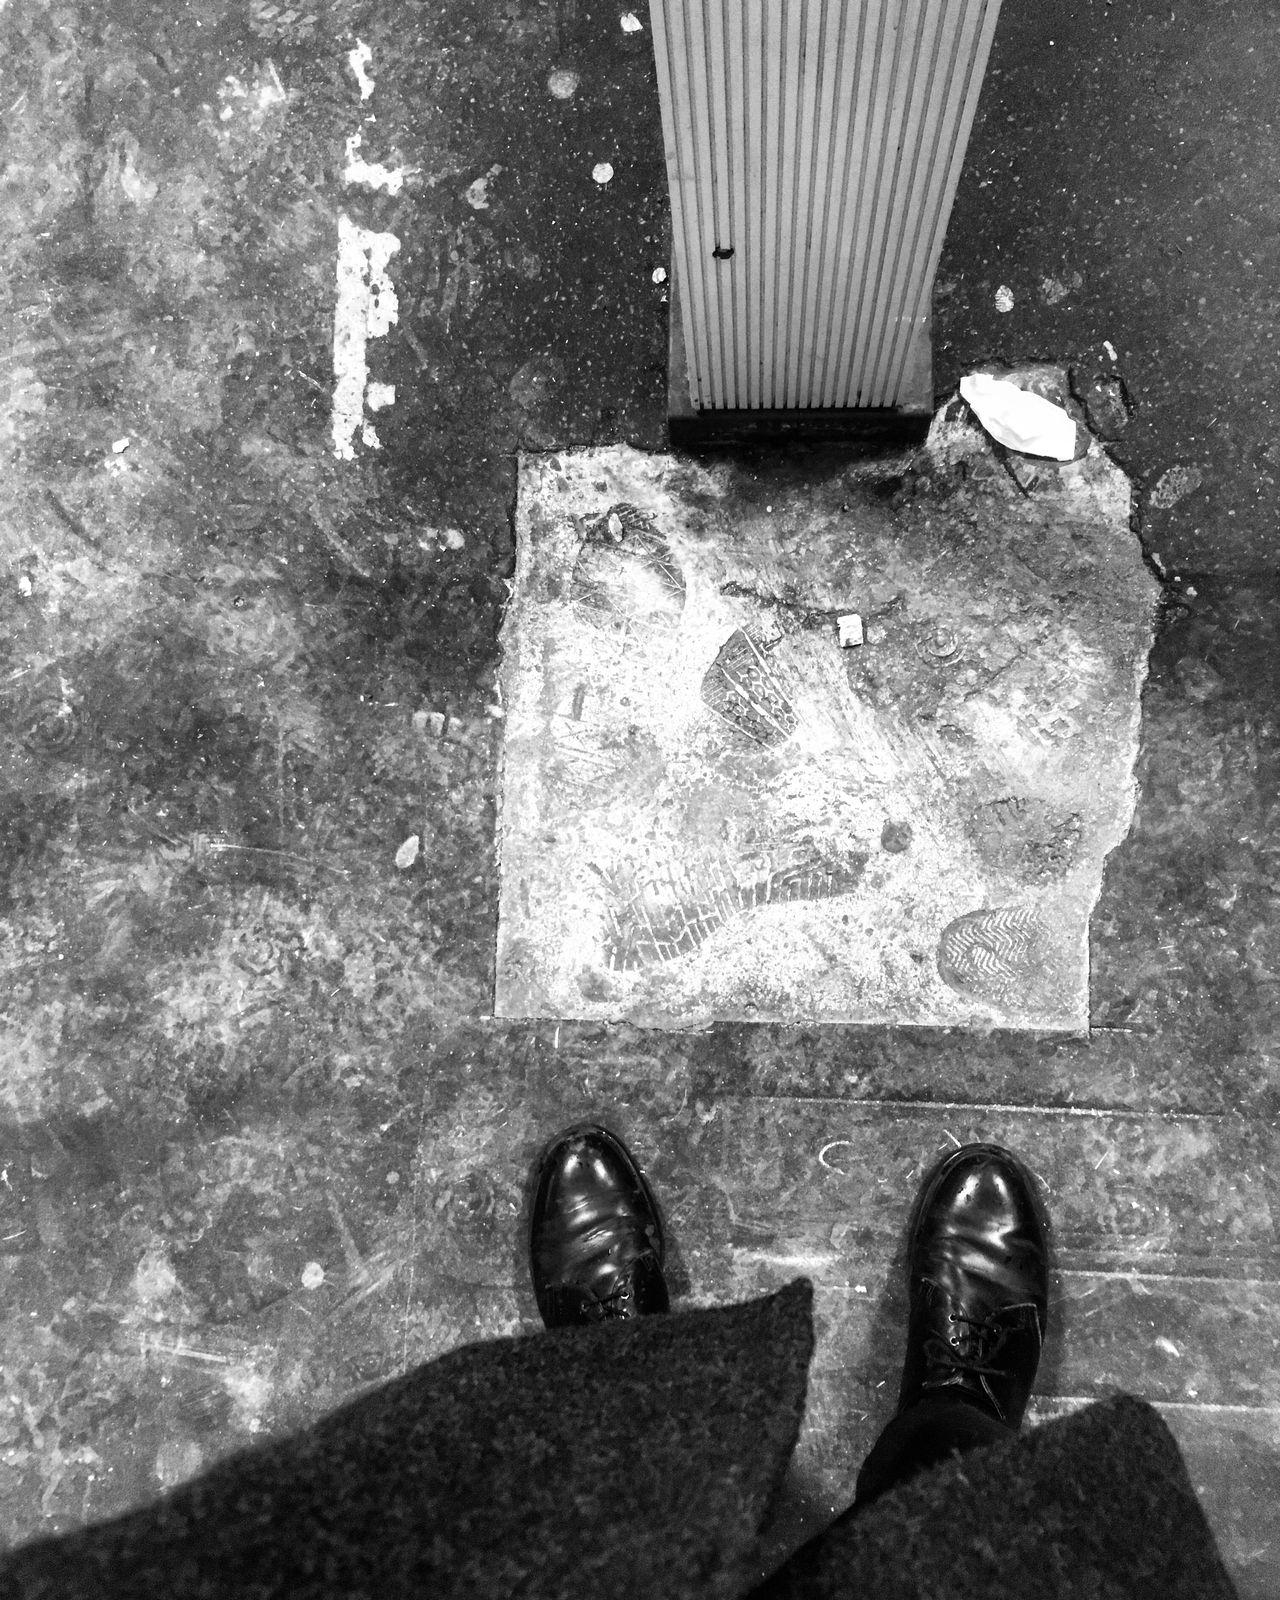 Shoe No People Outdoors Monochrome Floor Lookdown Ground Travel Mess